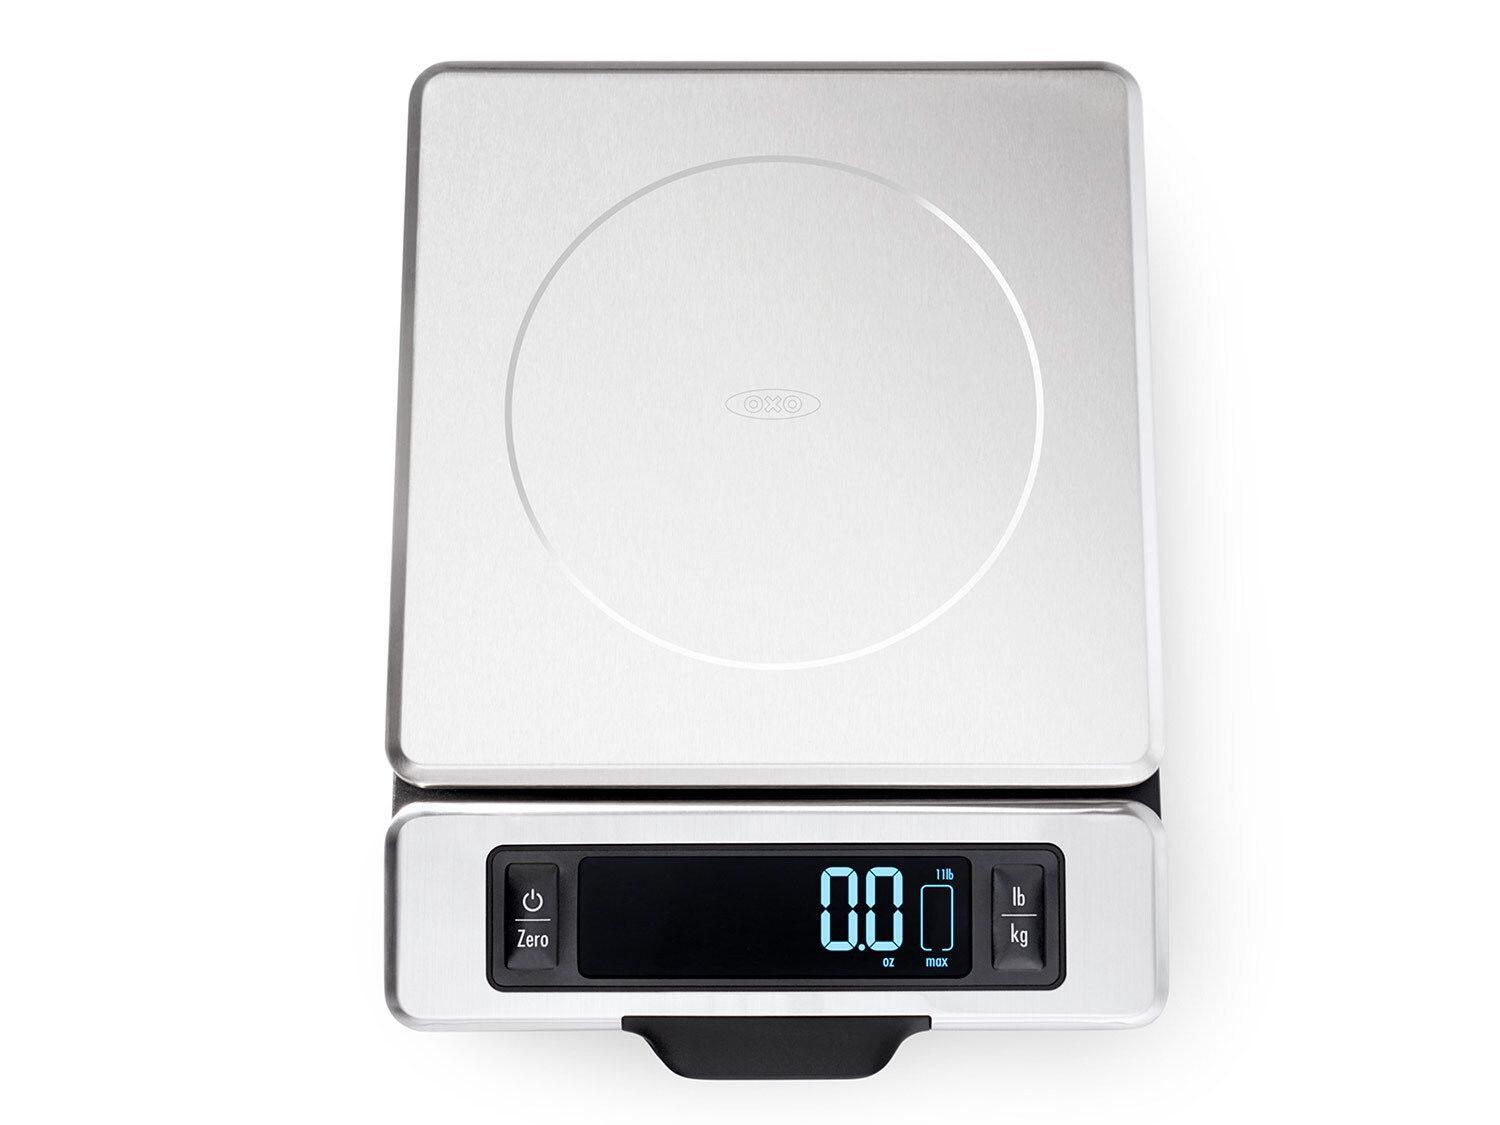 20210317_OXO-GG-11lb-Stainless-Steel-Scale-with-Pull-Out-Display_Solo